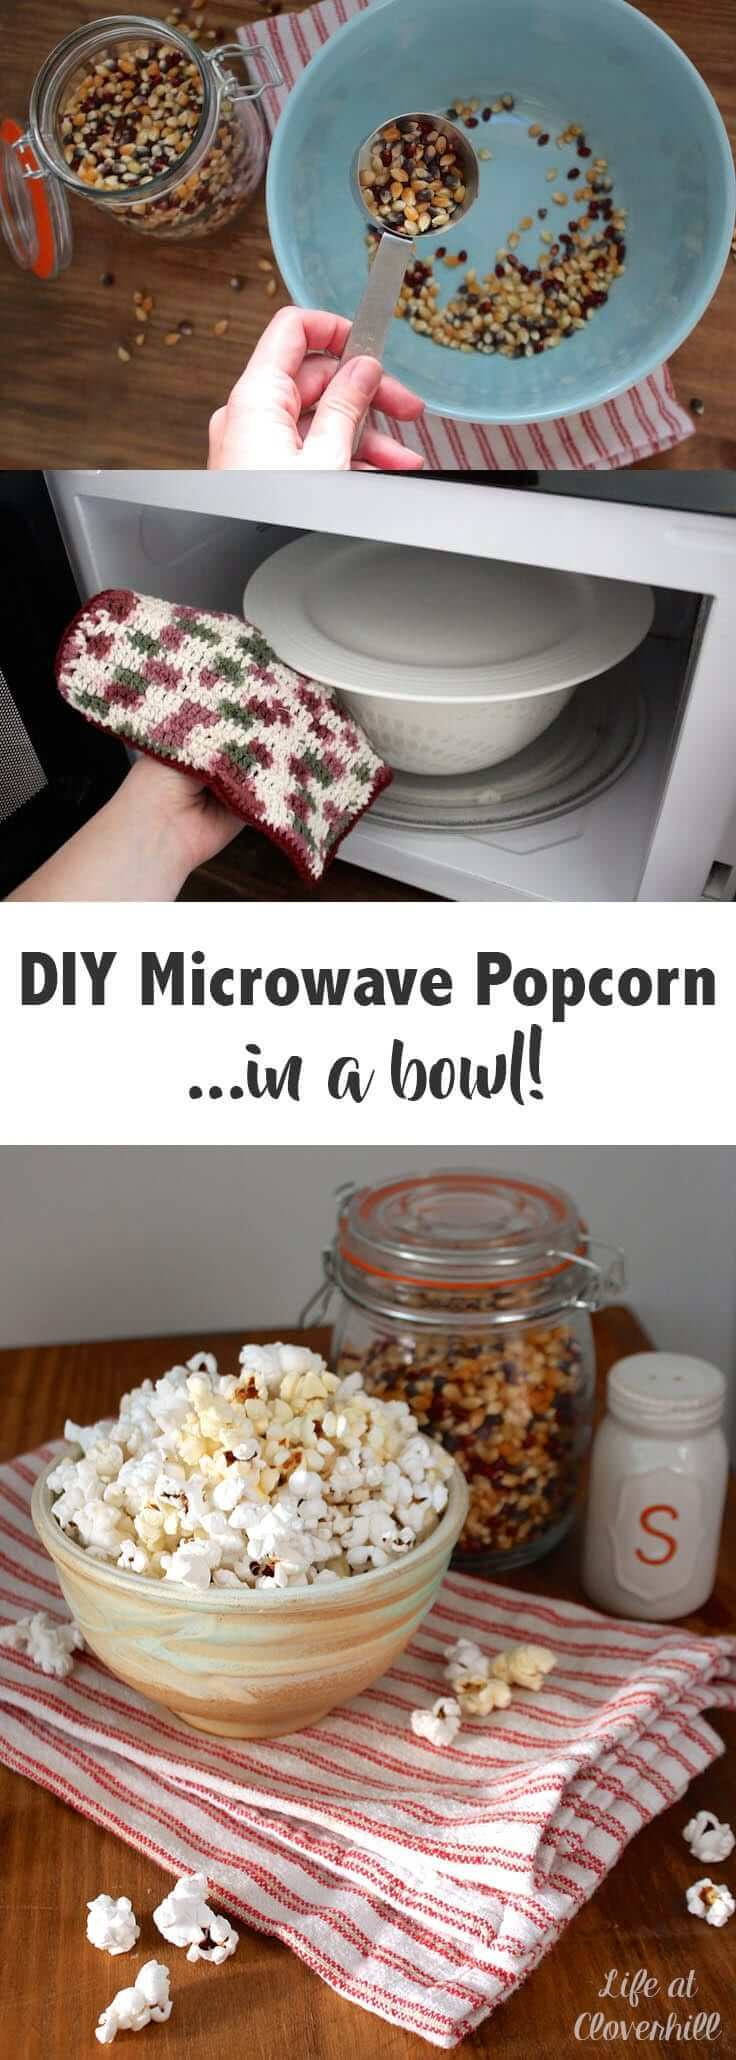 DIY Microwave Popcorn in a Bowl: A Healthy Snack Idea